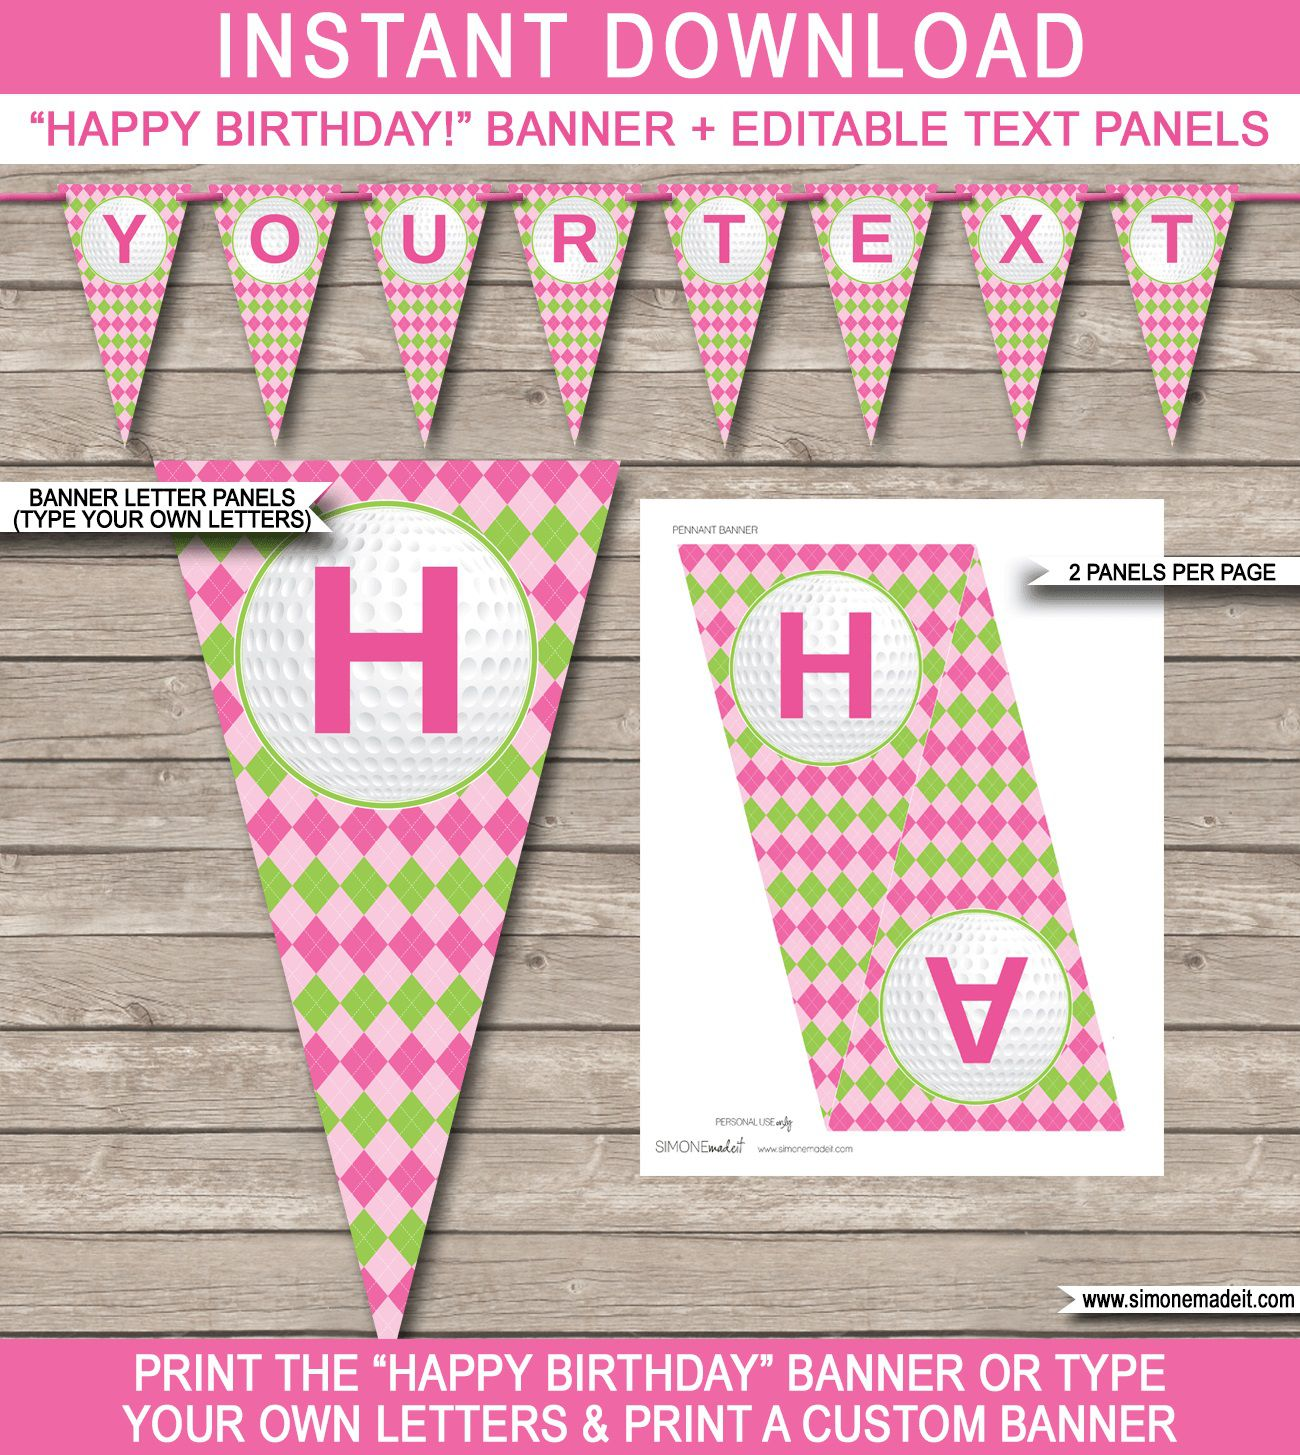 008 Archaicawful Happy Birthday Banner Template Sample  Publisher Editable PdfFull